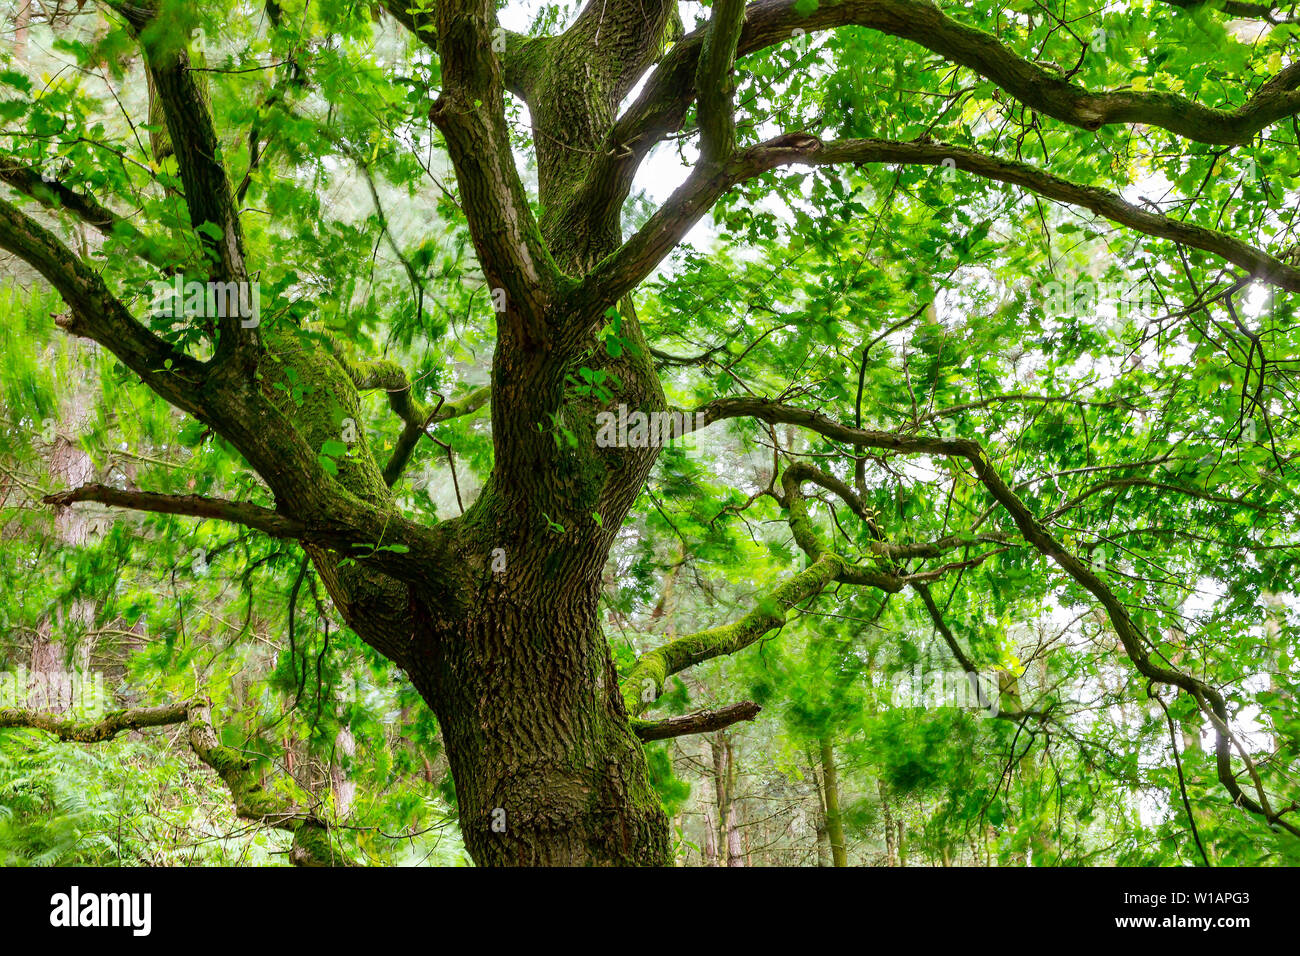 Oak tree in Daresbury Firs against the light with leaves blowing in the wind - Stock Image